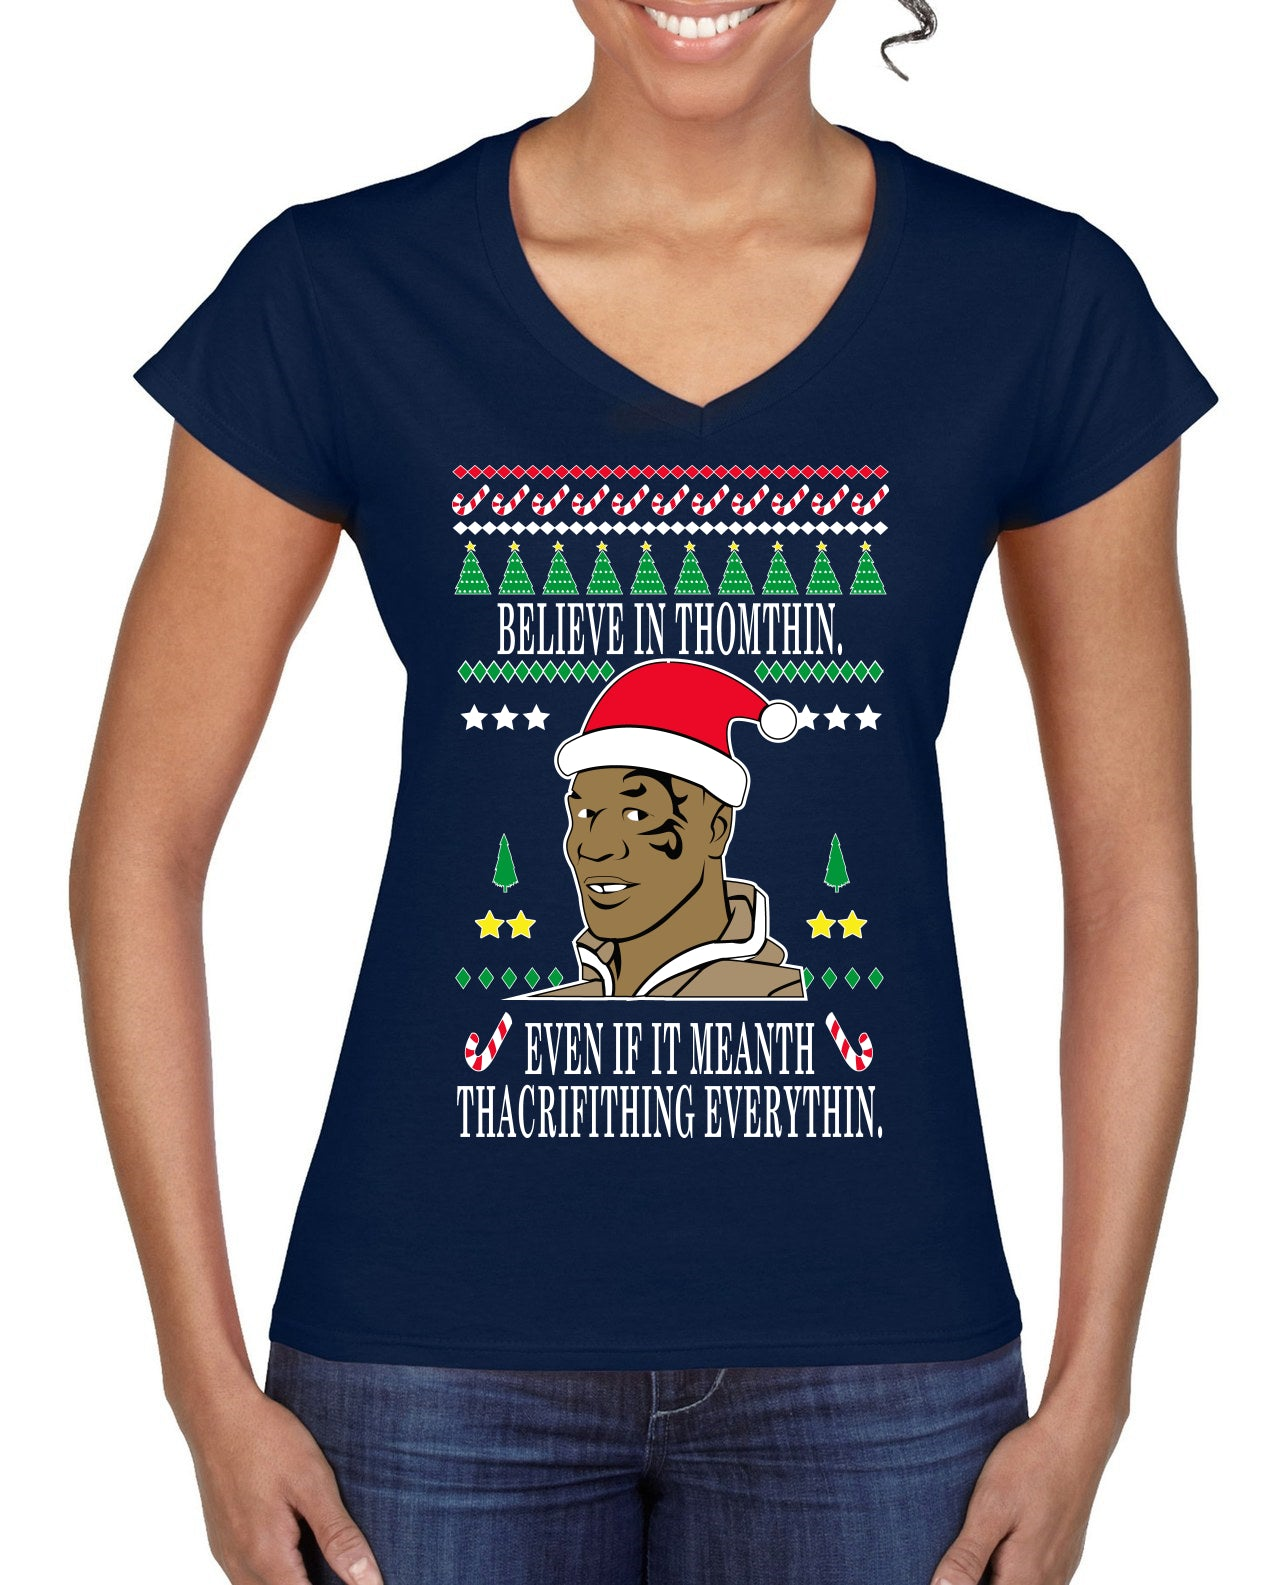 Tyson lisp Believe In Thomthin Thacrifithing Everythin Ugly Christmas Sweater Women's Standard V-Neck Tee